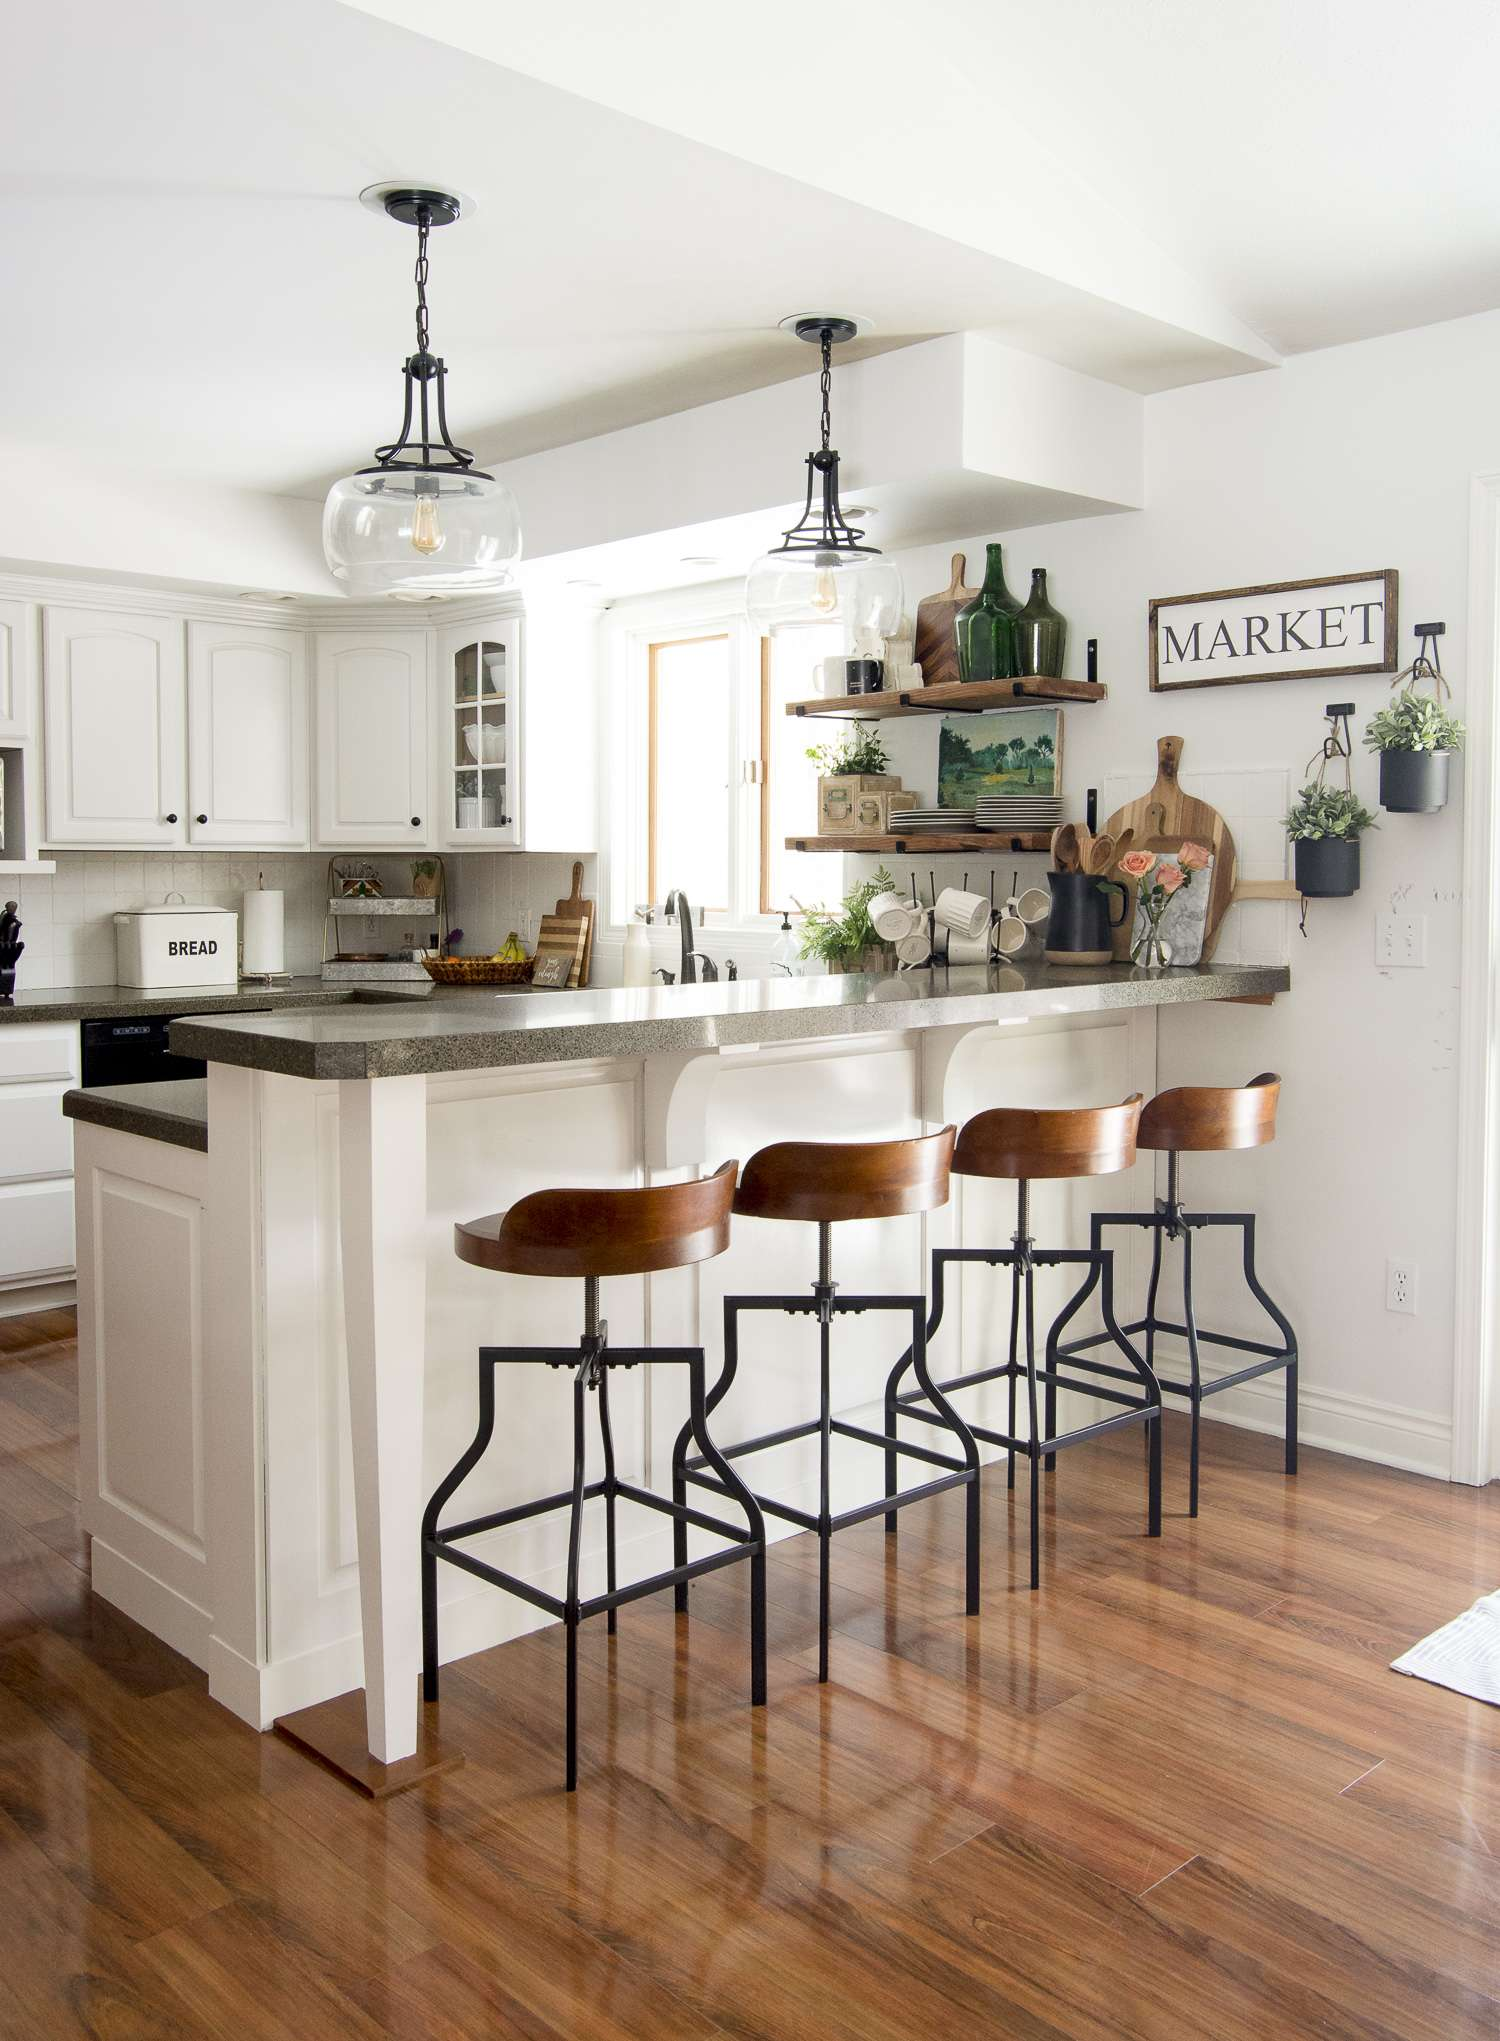 How To Decorate Kitchen Shelves | Grace In My Space